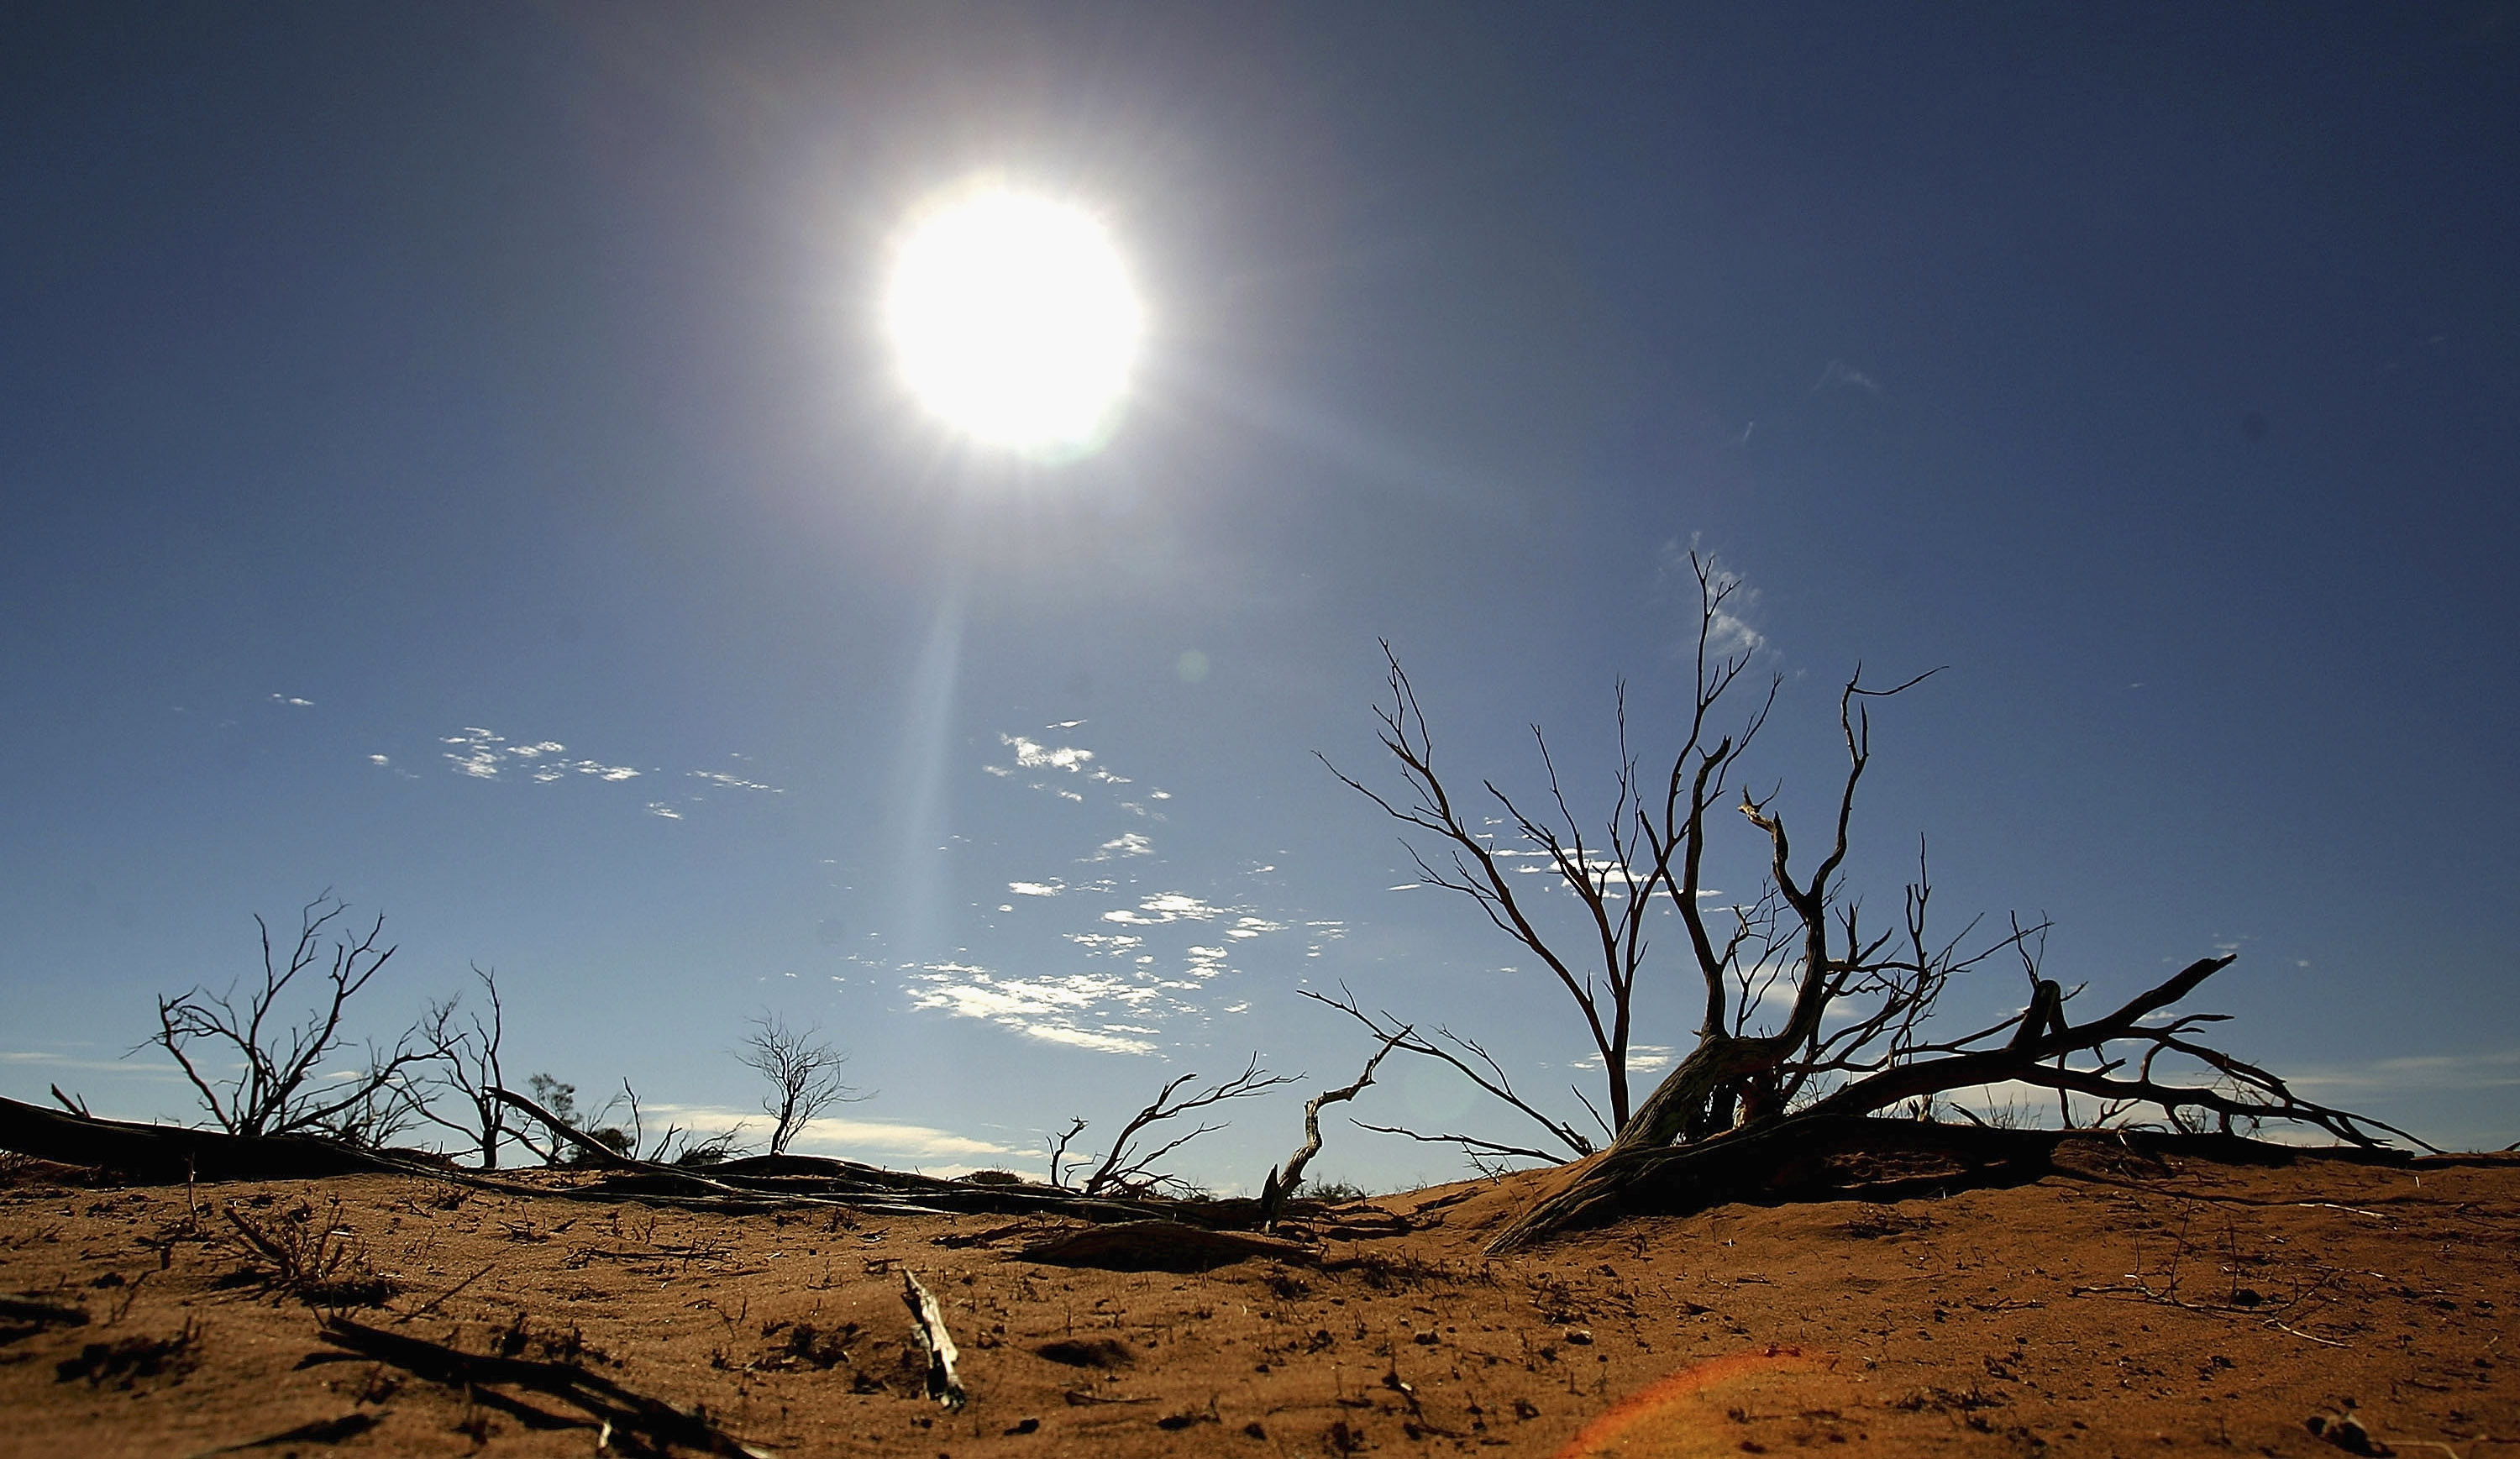 A file photo shows the sun shining on the outback landscape June 7, 2005 near Marree, Australia.